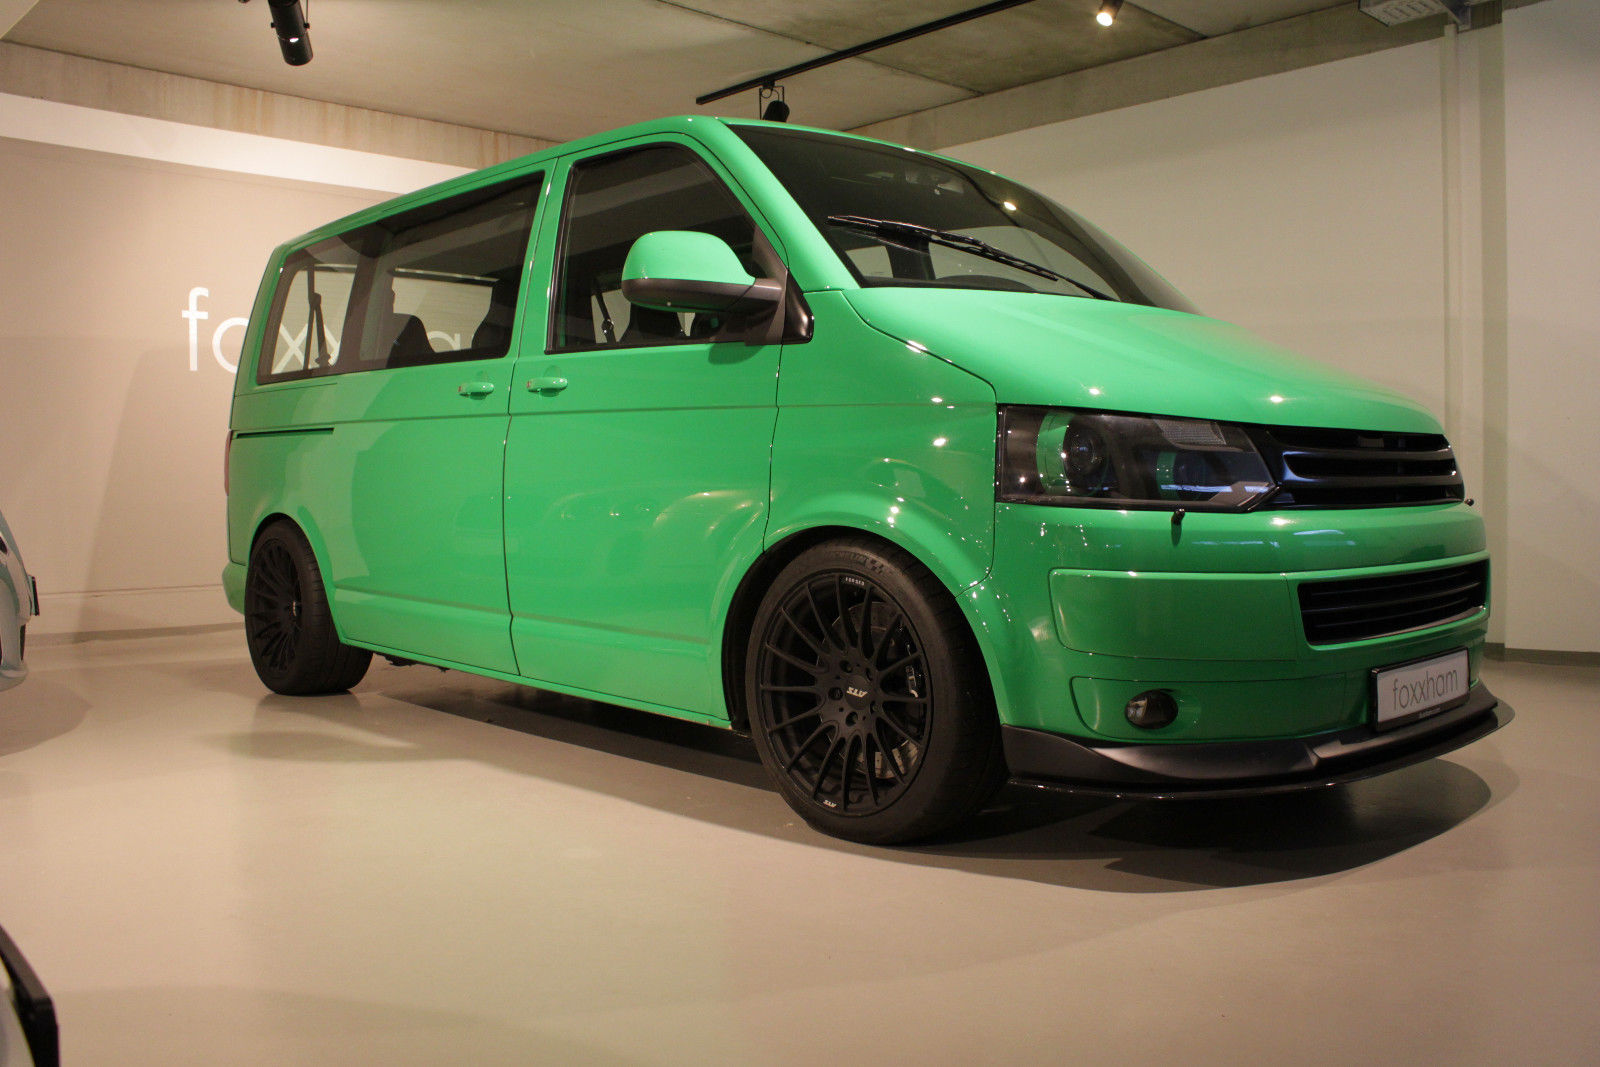 """12659bcad8 This Volkswagen Transporter (T5) called """"TH2RS"""" was built in 2009 by TH  Automobile in Berlin"""